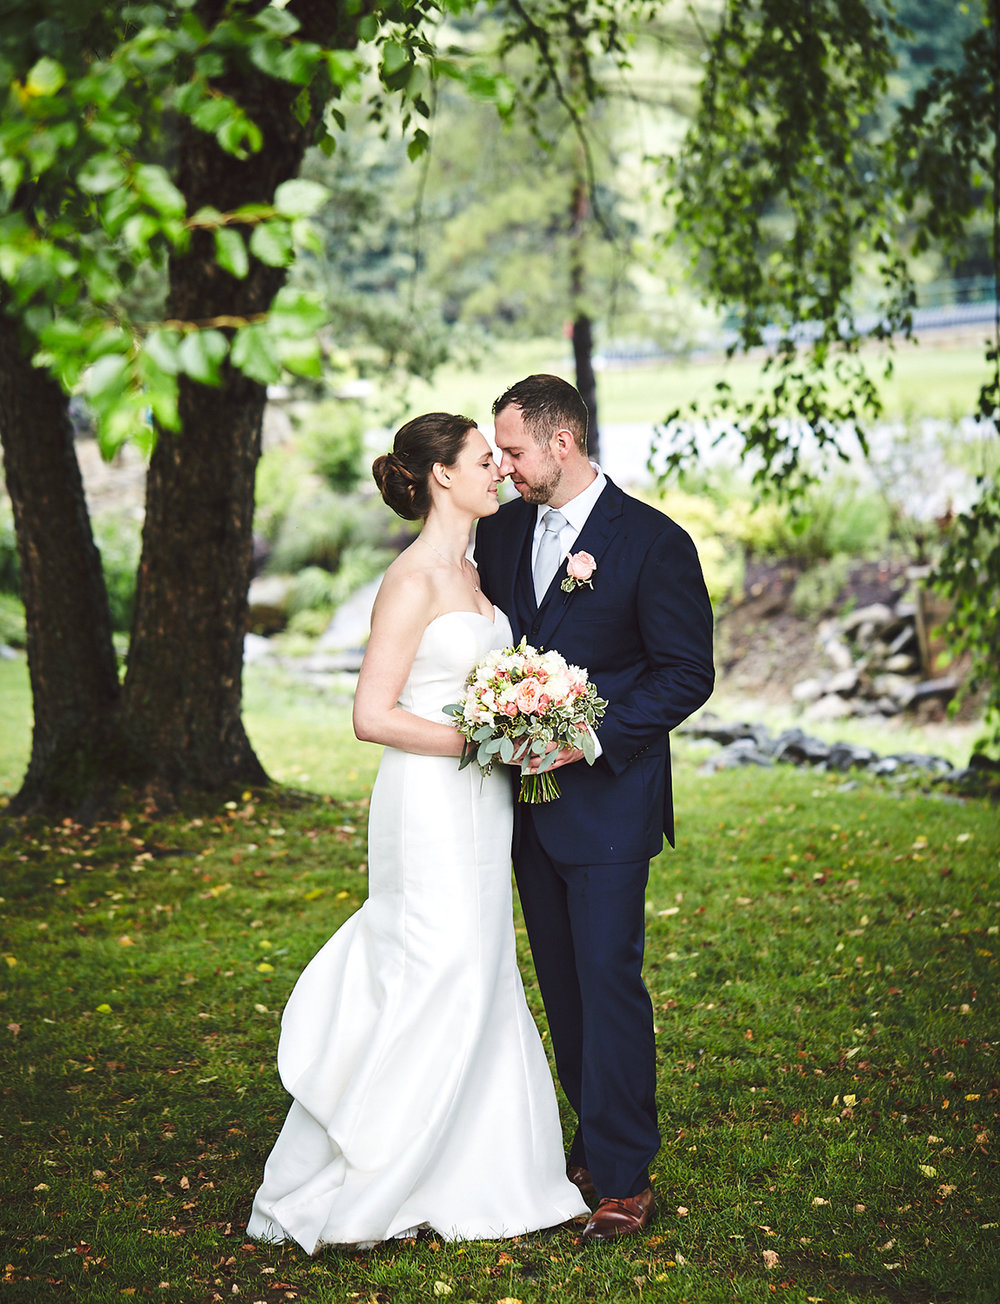 180714_HolidayValleyLodgeWeddingPhotography_By_BriJohnsonWeddings_0101.jpg